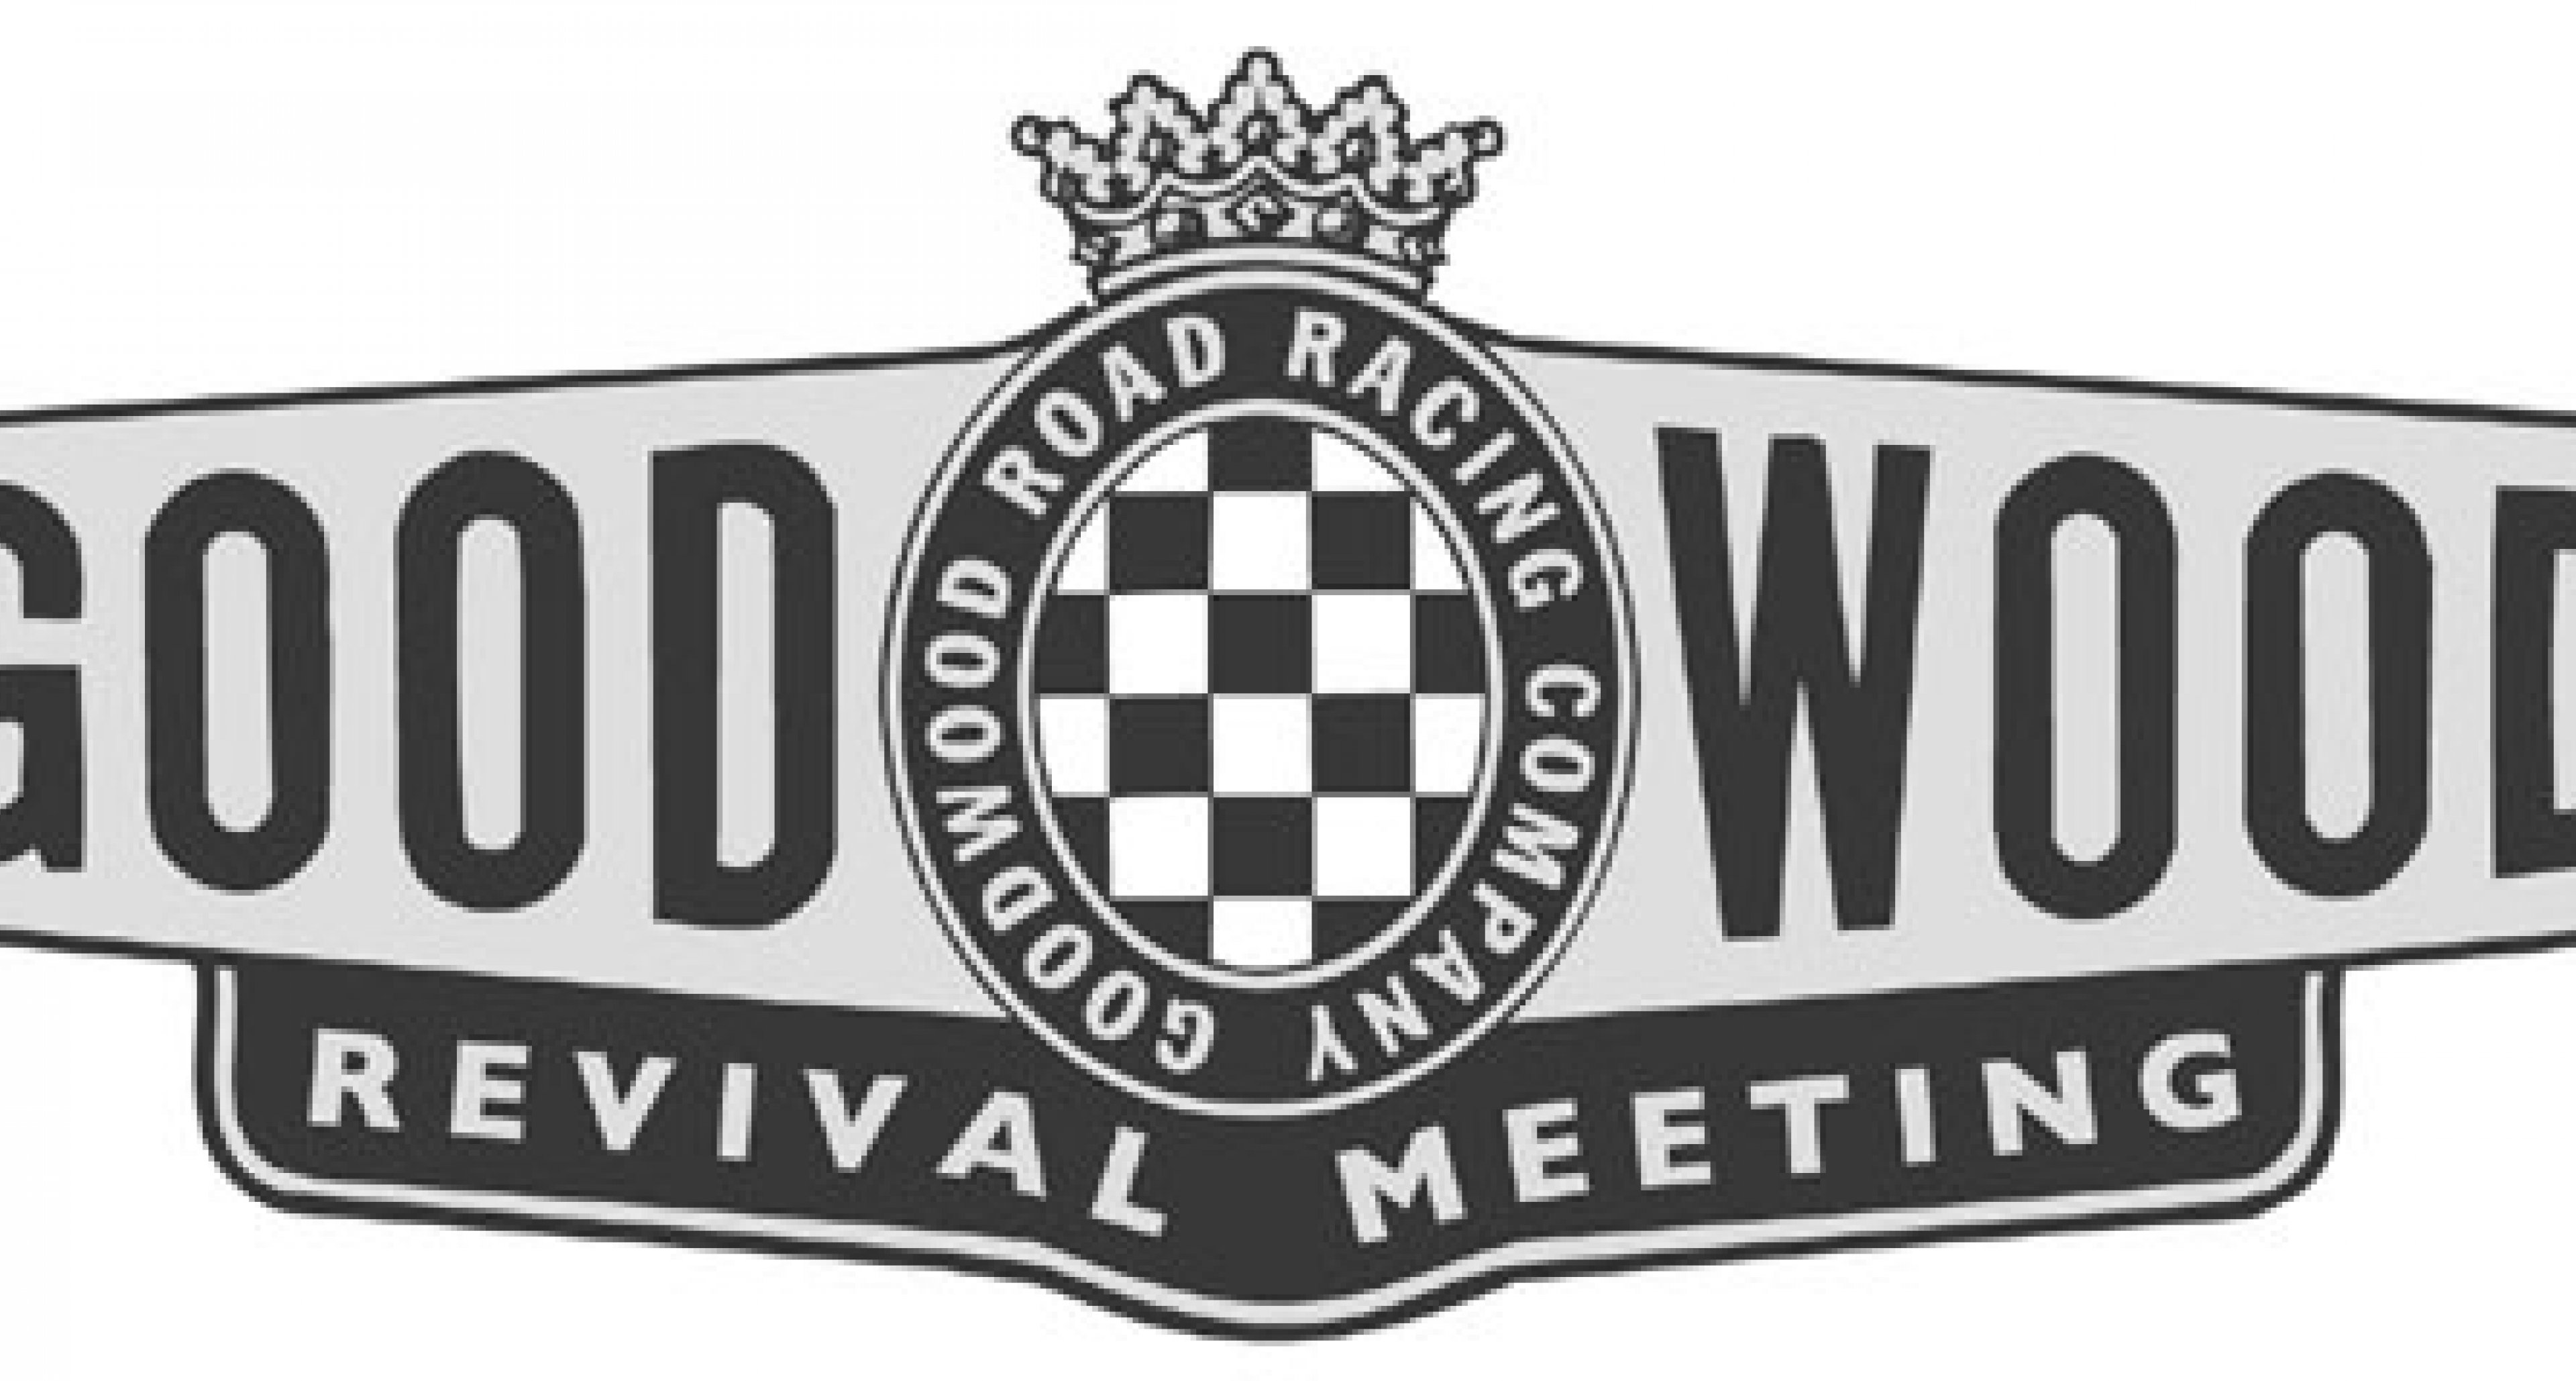 Goodwood Revival 2003 - Star Drivers now confirmed